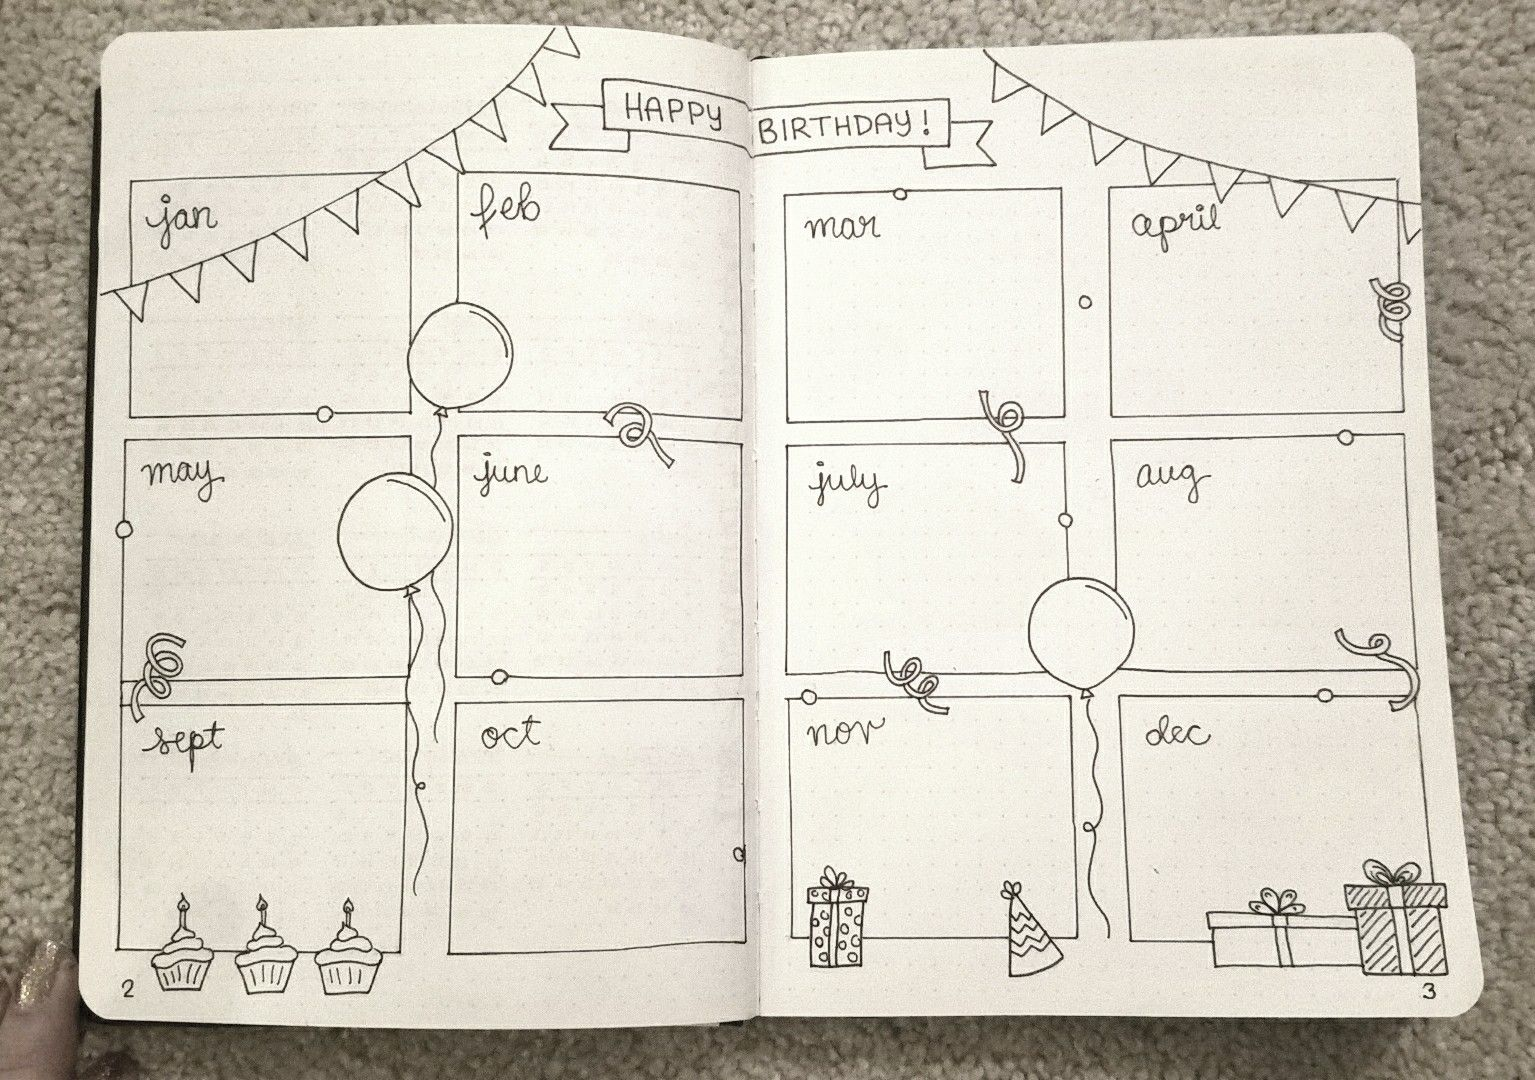 Bujo birthdays page | bullet journal | Pinterest | Bujo, Bullet ...